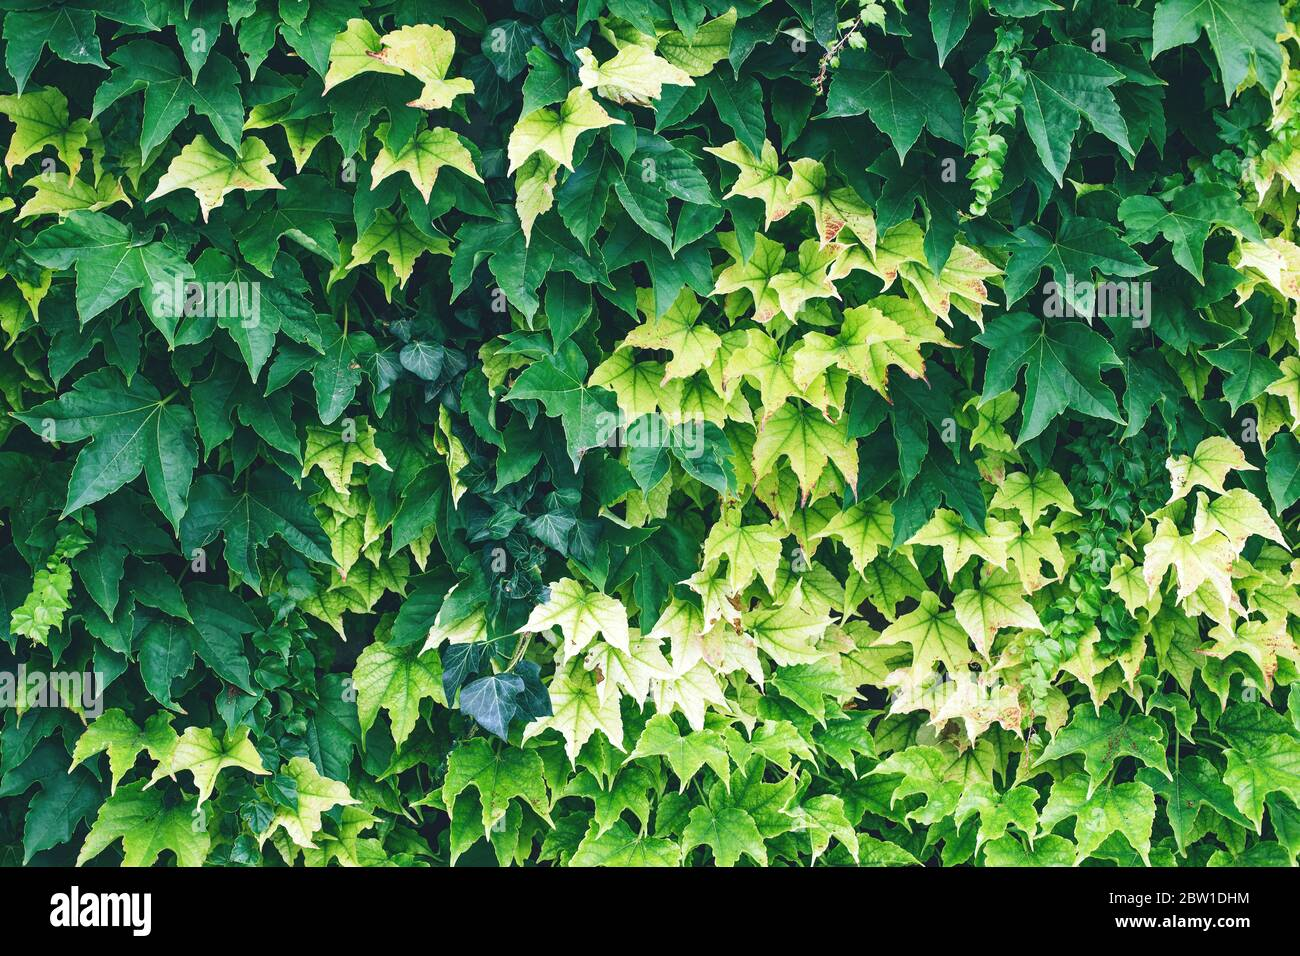 Abstract Ivy Green Wall Surface For Decoration Design Natural Background Texture Spring Summer Floral Wallpaper Interior Vertical Garden Urban Jun Stock Photo Alamy